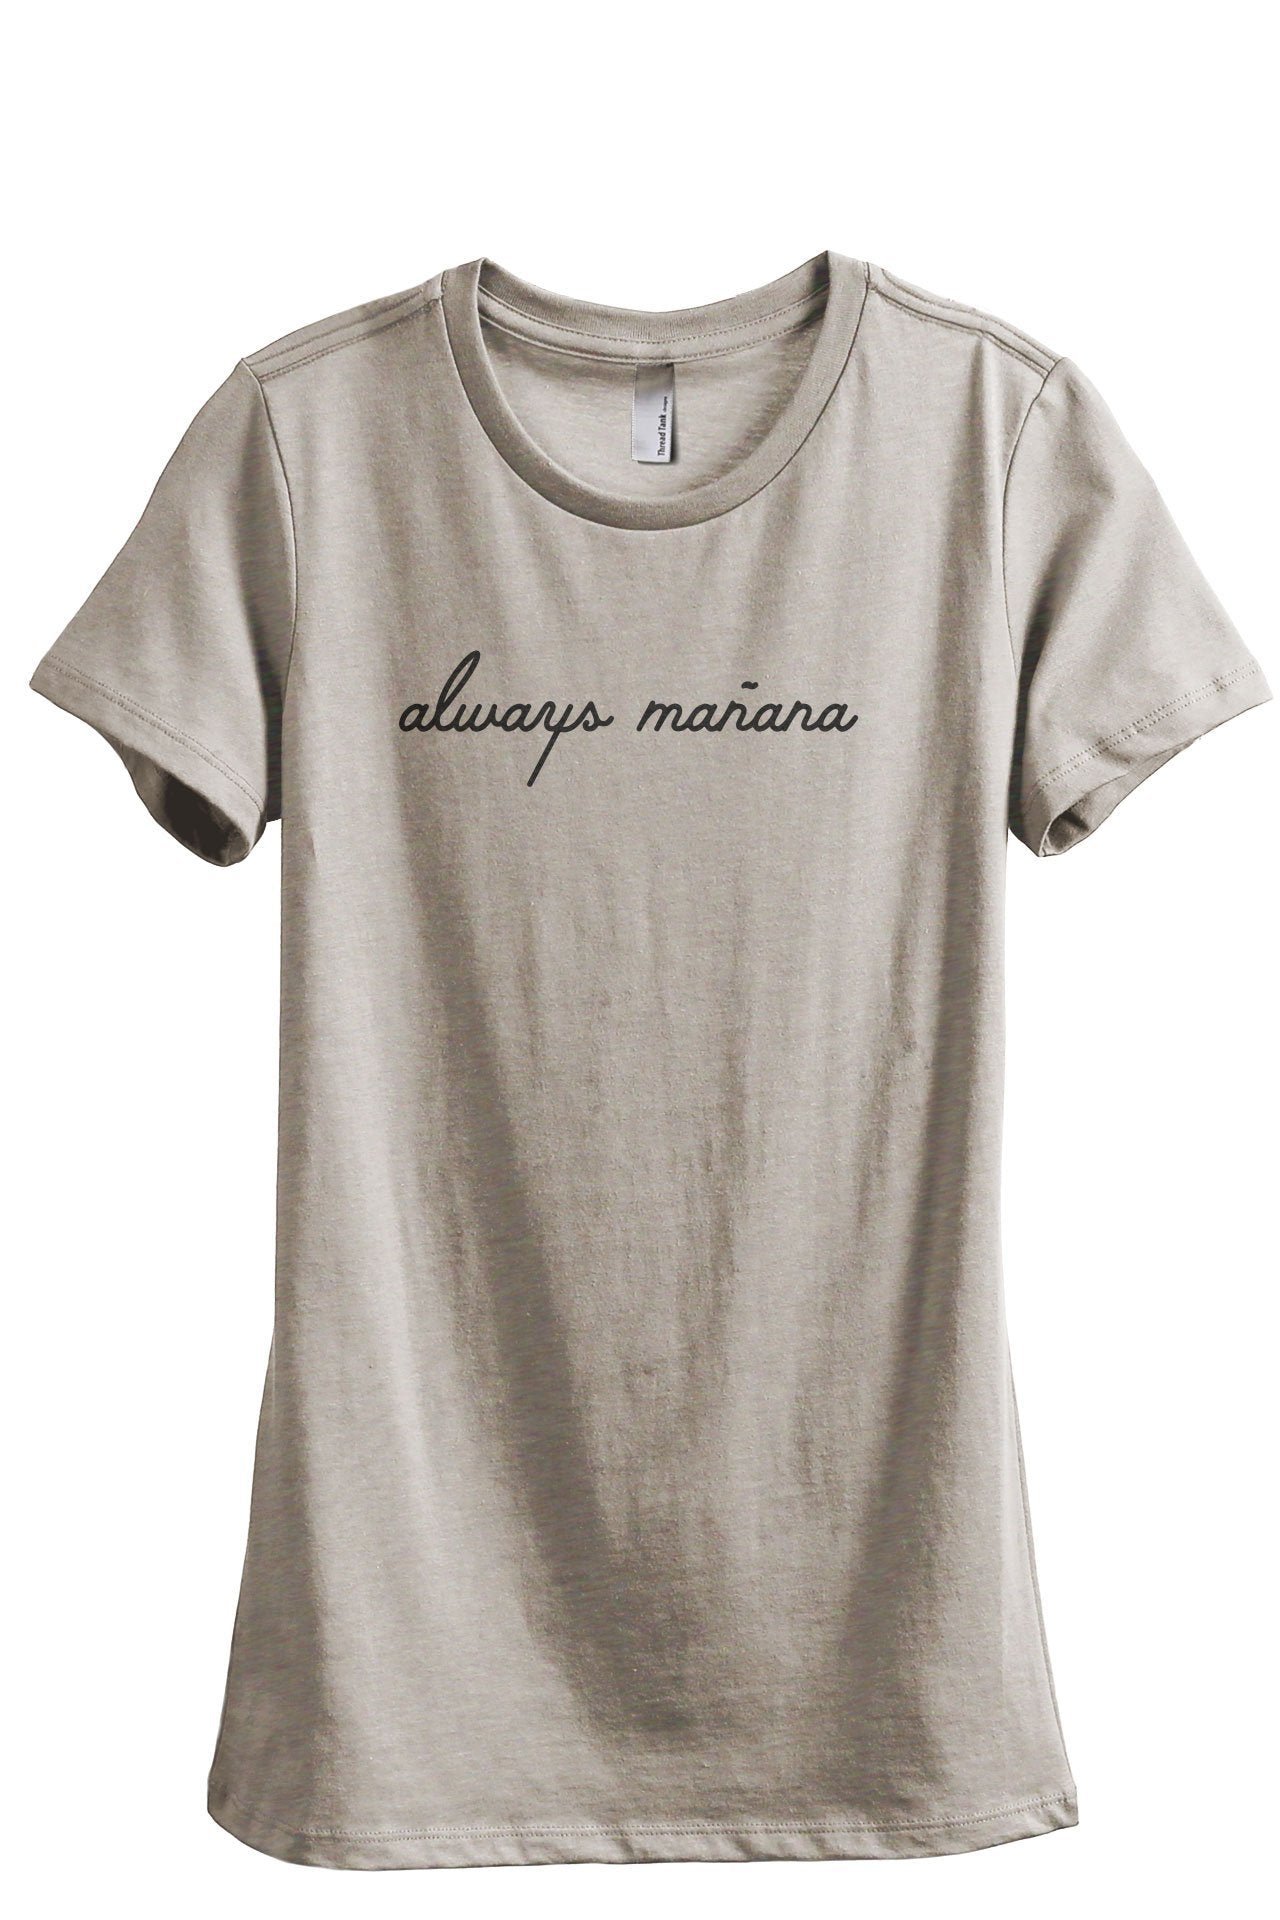 Always Manana Women's Relaxed Crewneck T-Shirt Top Tee Charcoal Grey